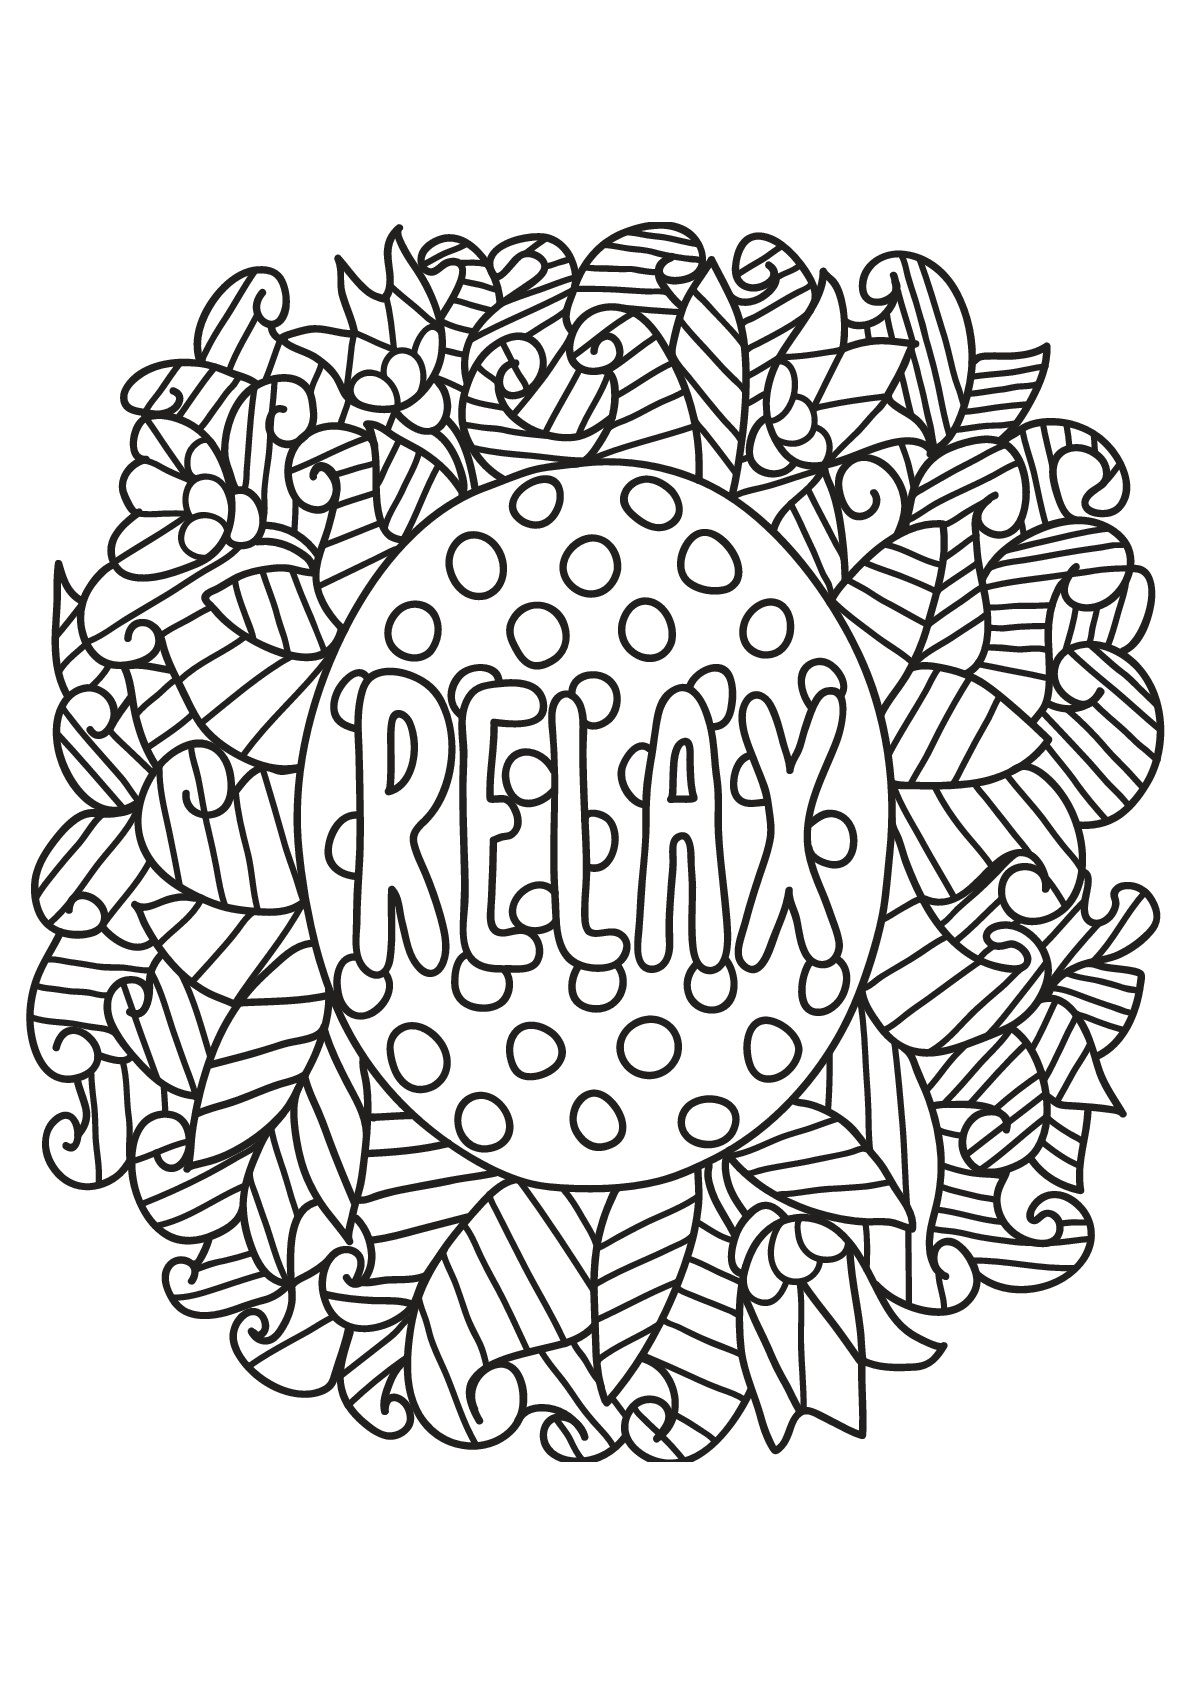 - Free Book Quote 19 - Positive & Inspiring Quotes Adult Coloring Pages